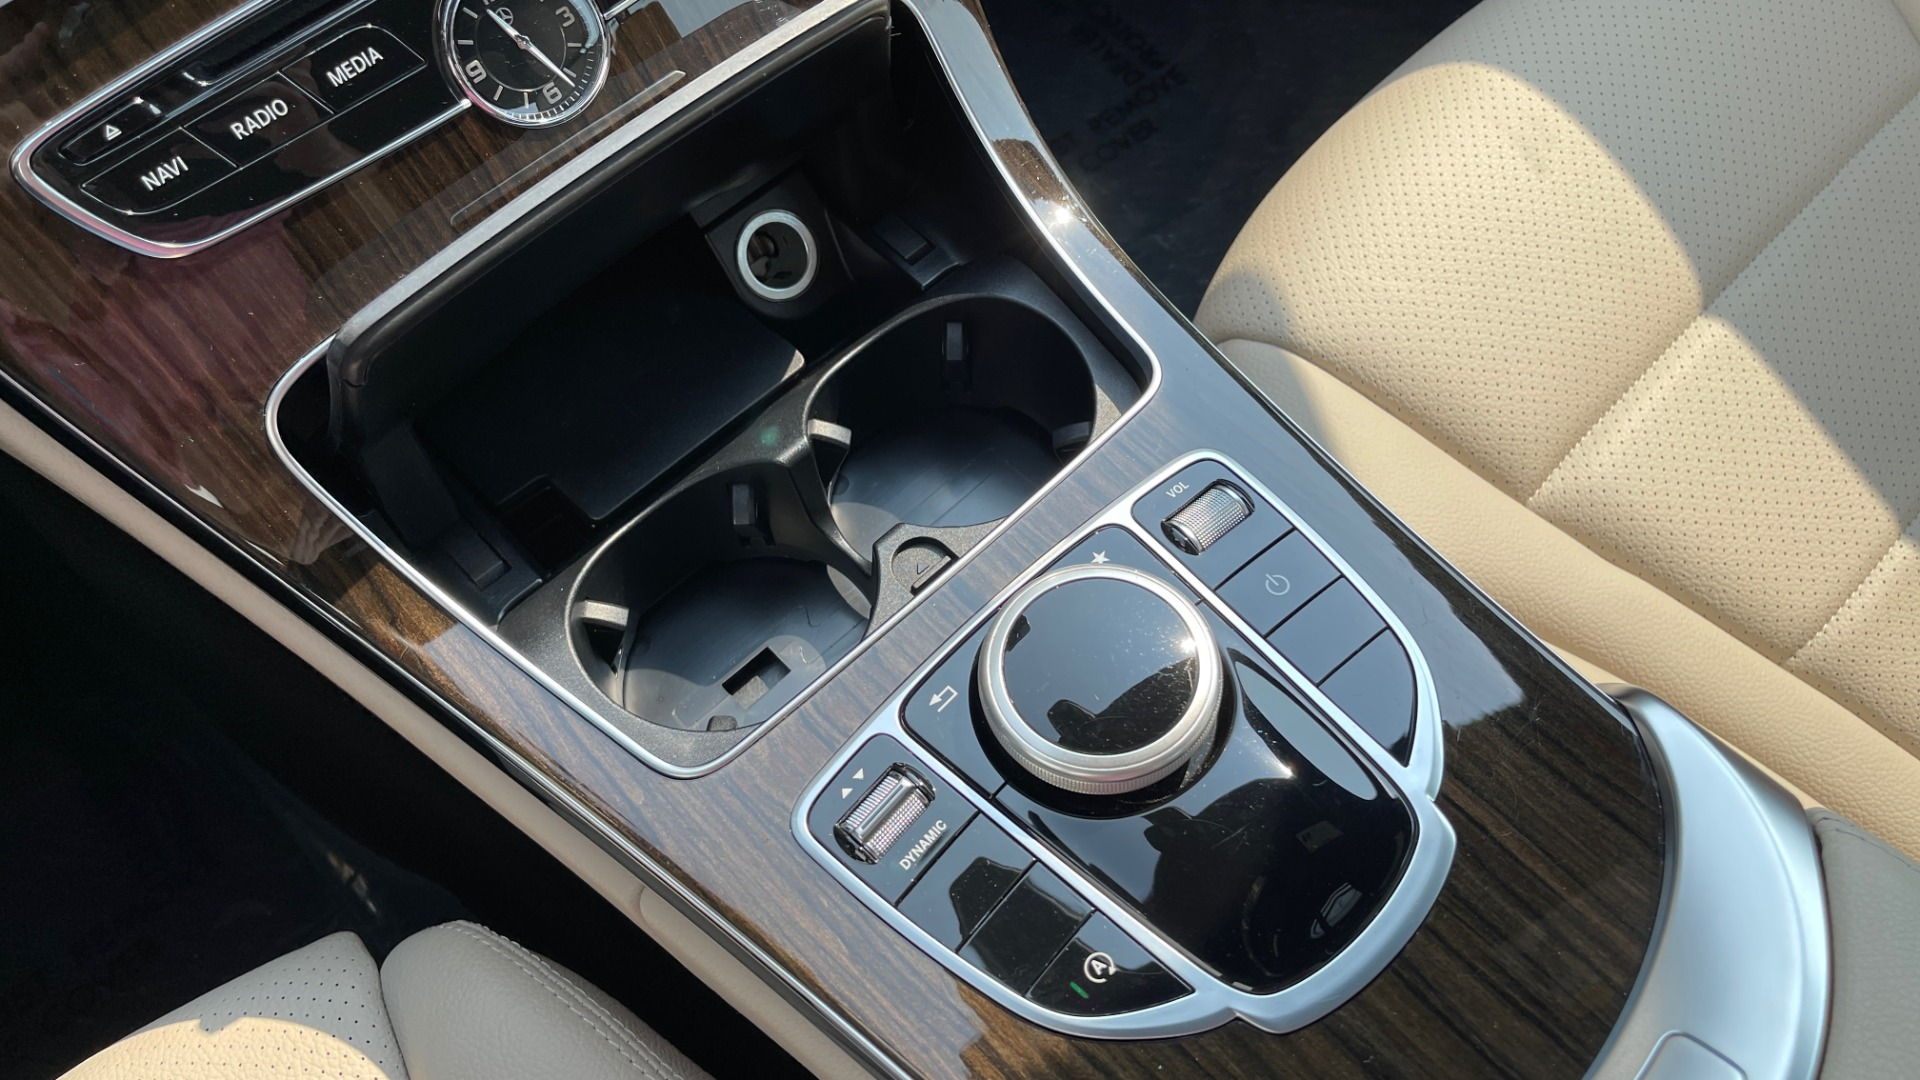 Used 2018 Mercedes-Benz C-Class C 300 4MATIC / PREMIUM / BURMESTER / HTD STS / SUNROOF / REARVIEW for sale $33,995 at Formula Imports in Charlotte NC 28227 38